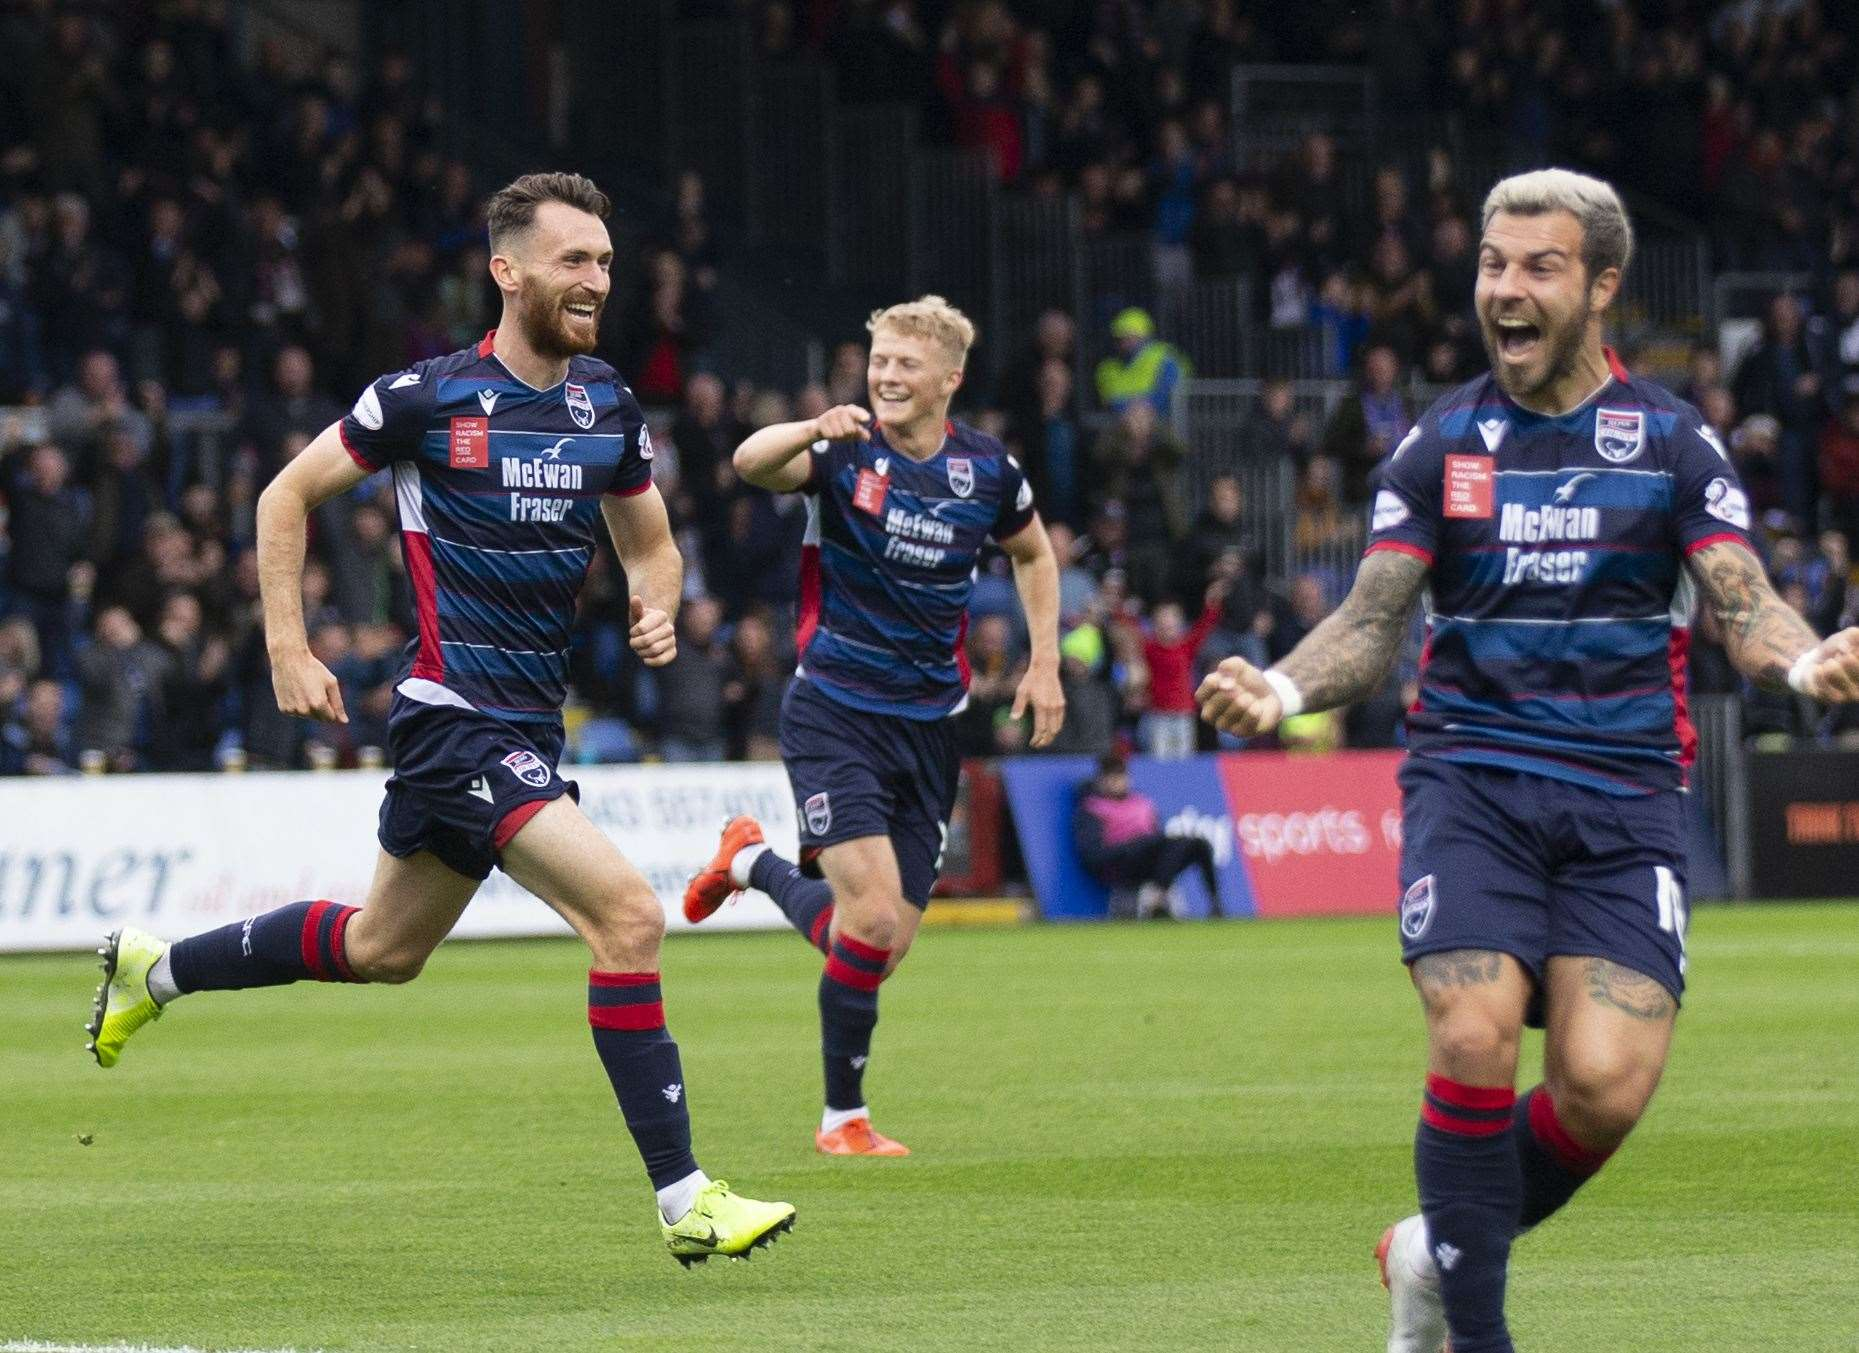 Joe Chalmers (left) put Ross County ahead early on against St Johnstone before eventually drawing 2-2.Picture: Ken Macpherson